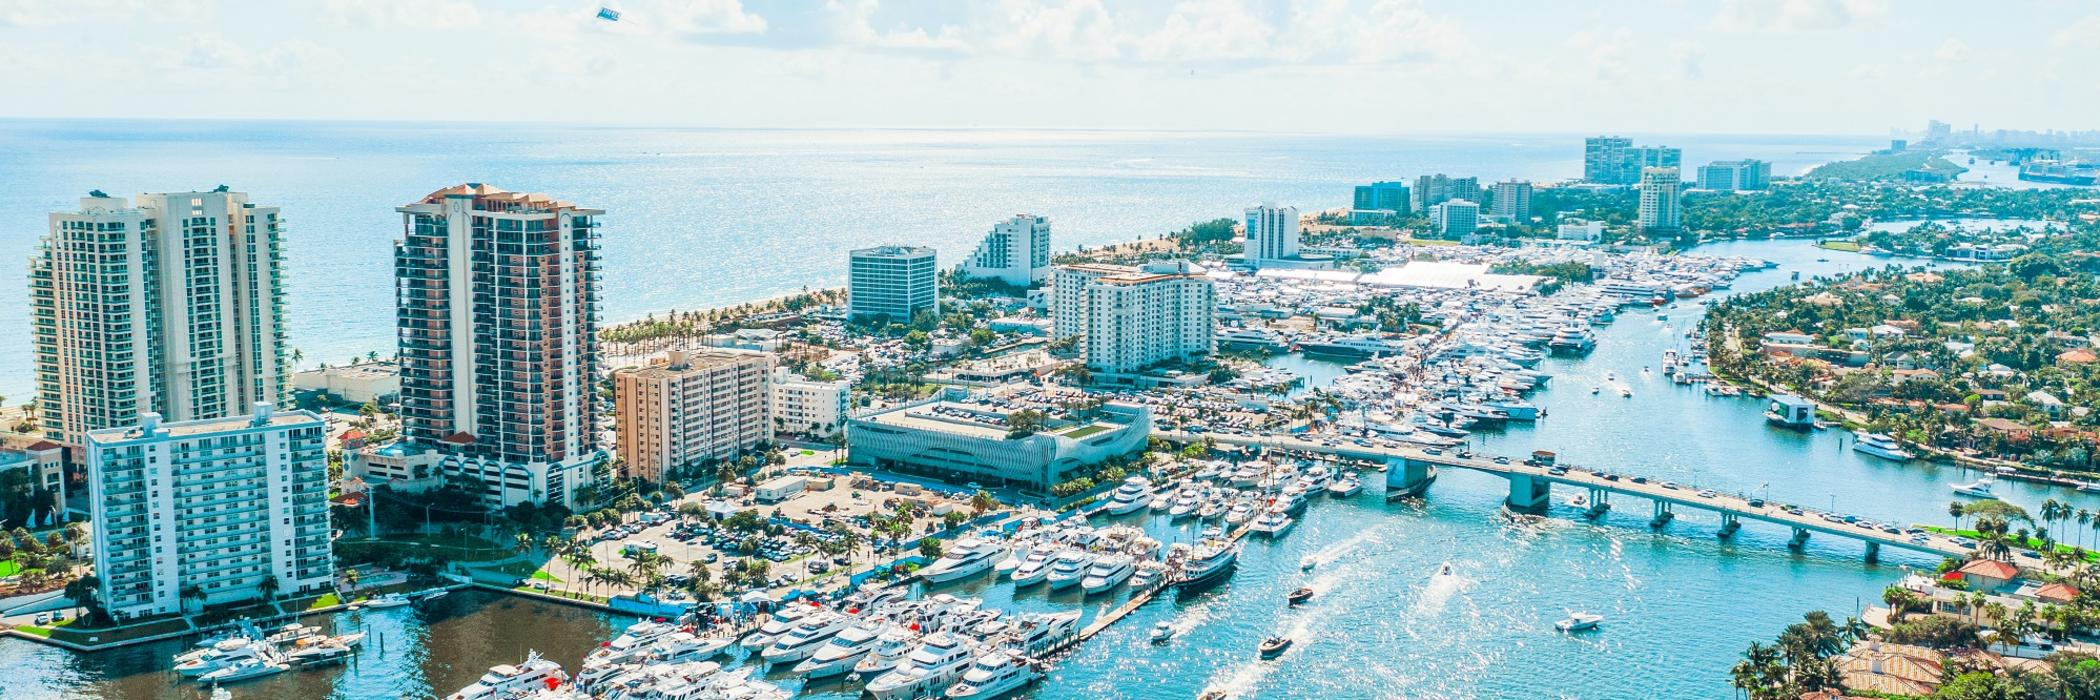 Aerial view of the Fort Lauderdale International Boat Show